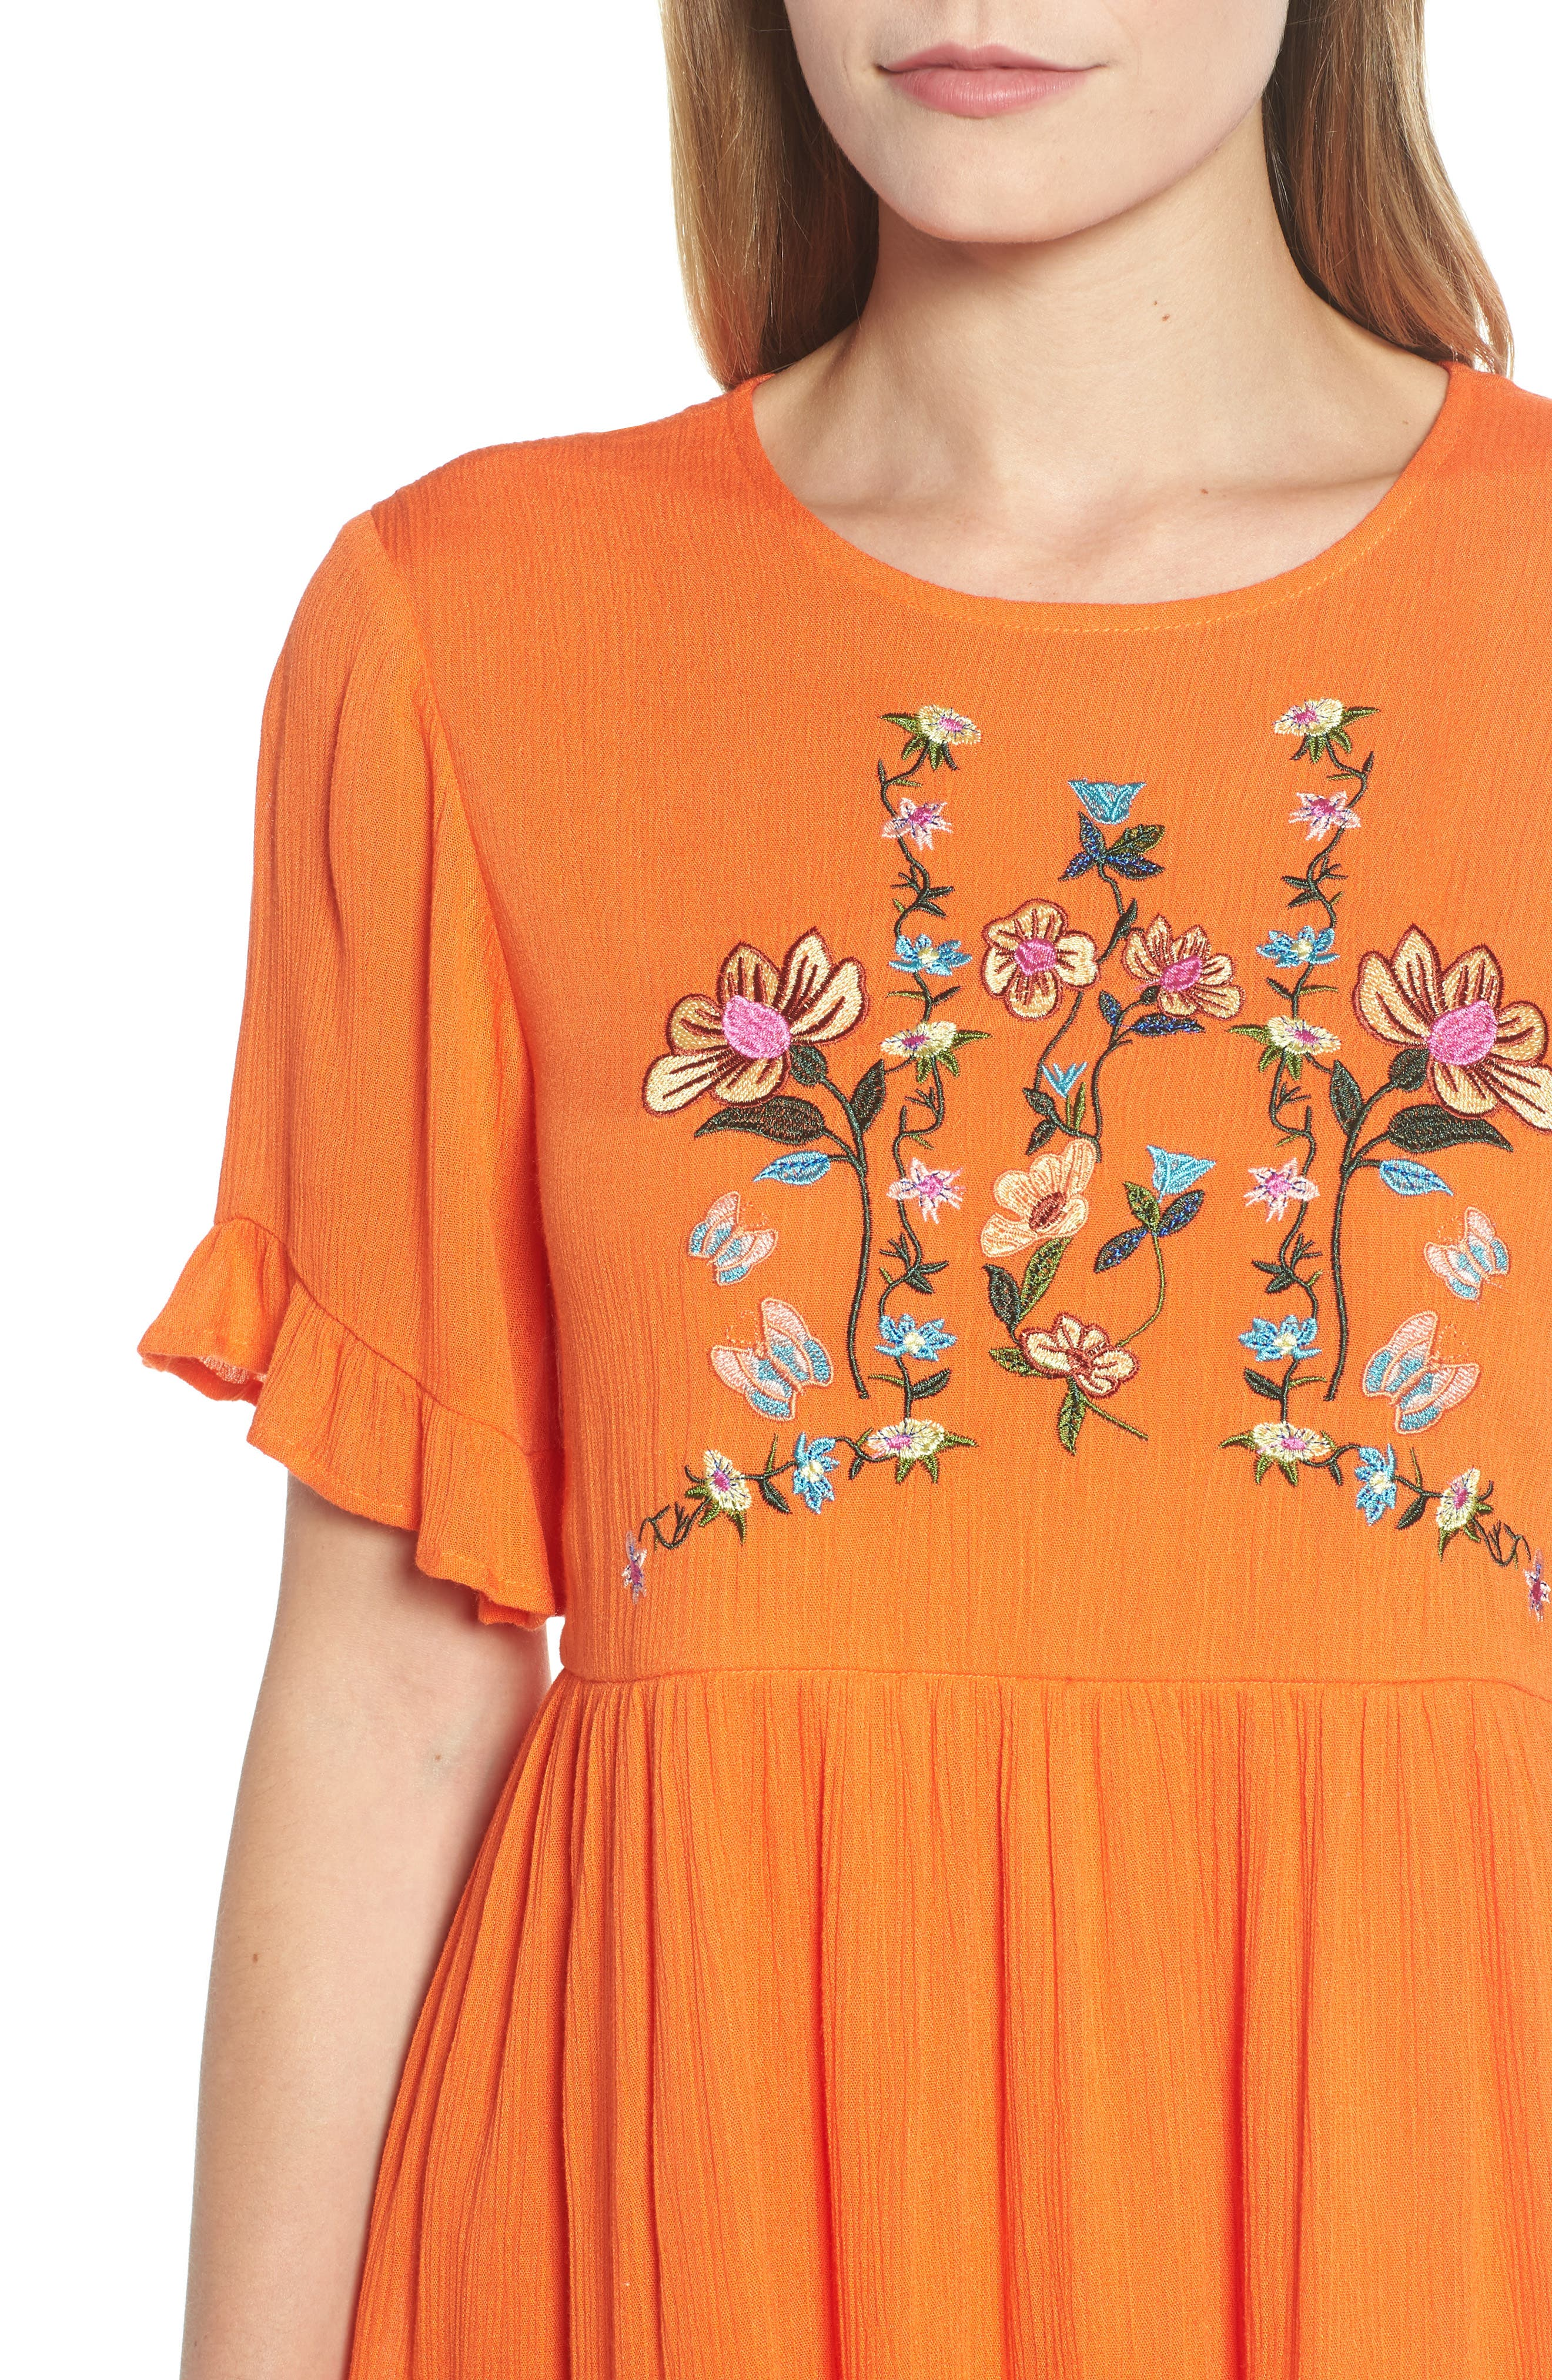 Embroidered Dress,                             Alternate thumbnail 4, color,                             Orange